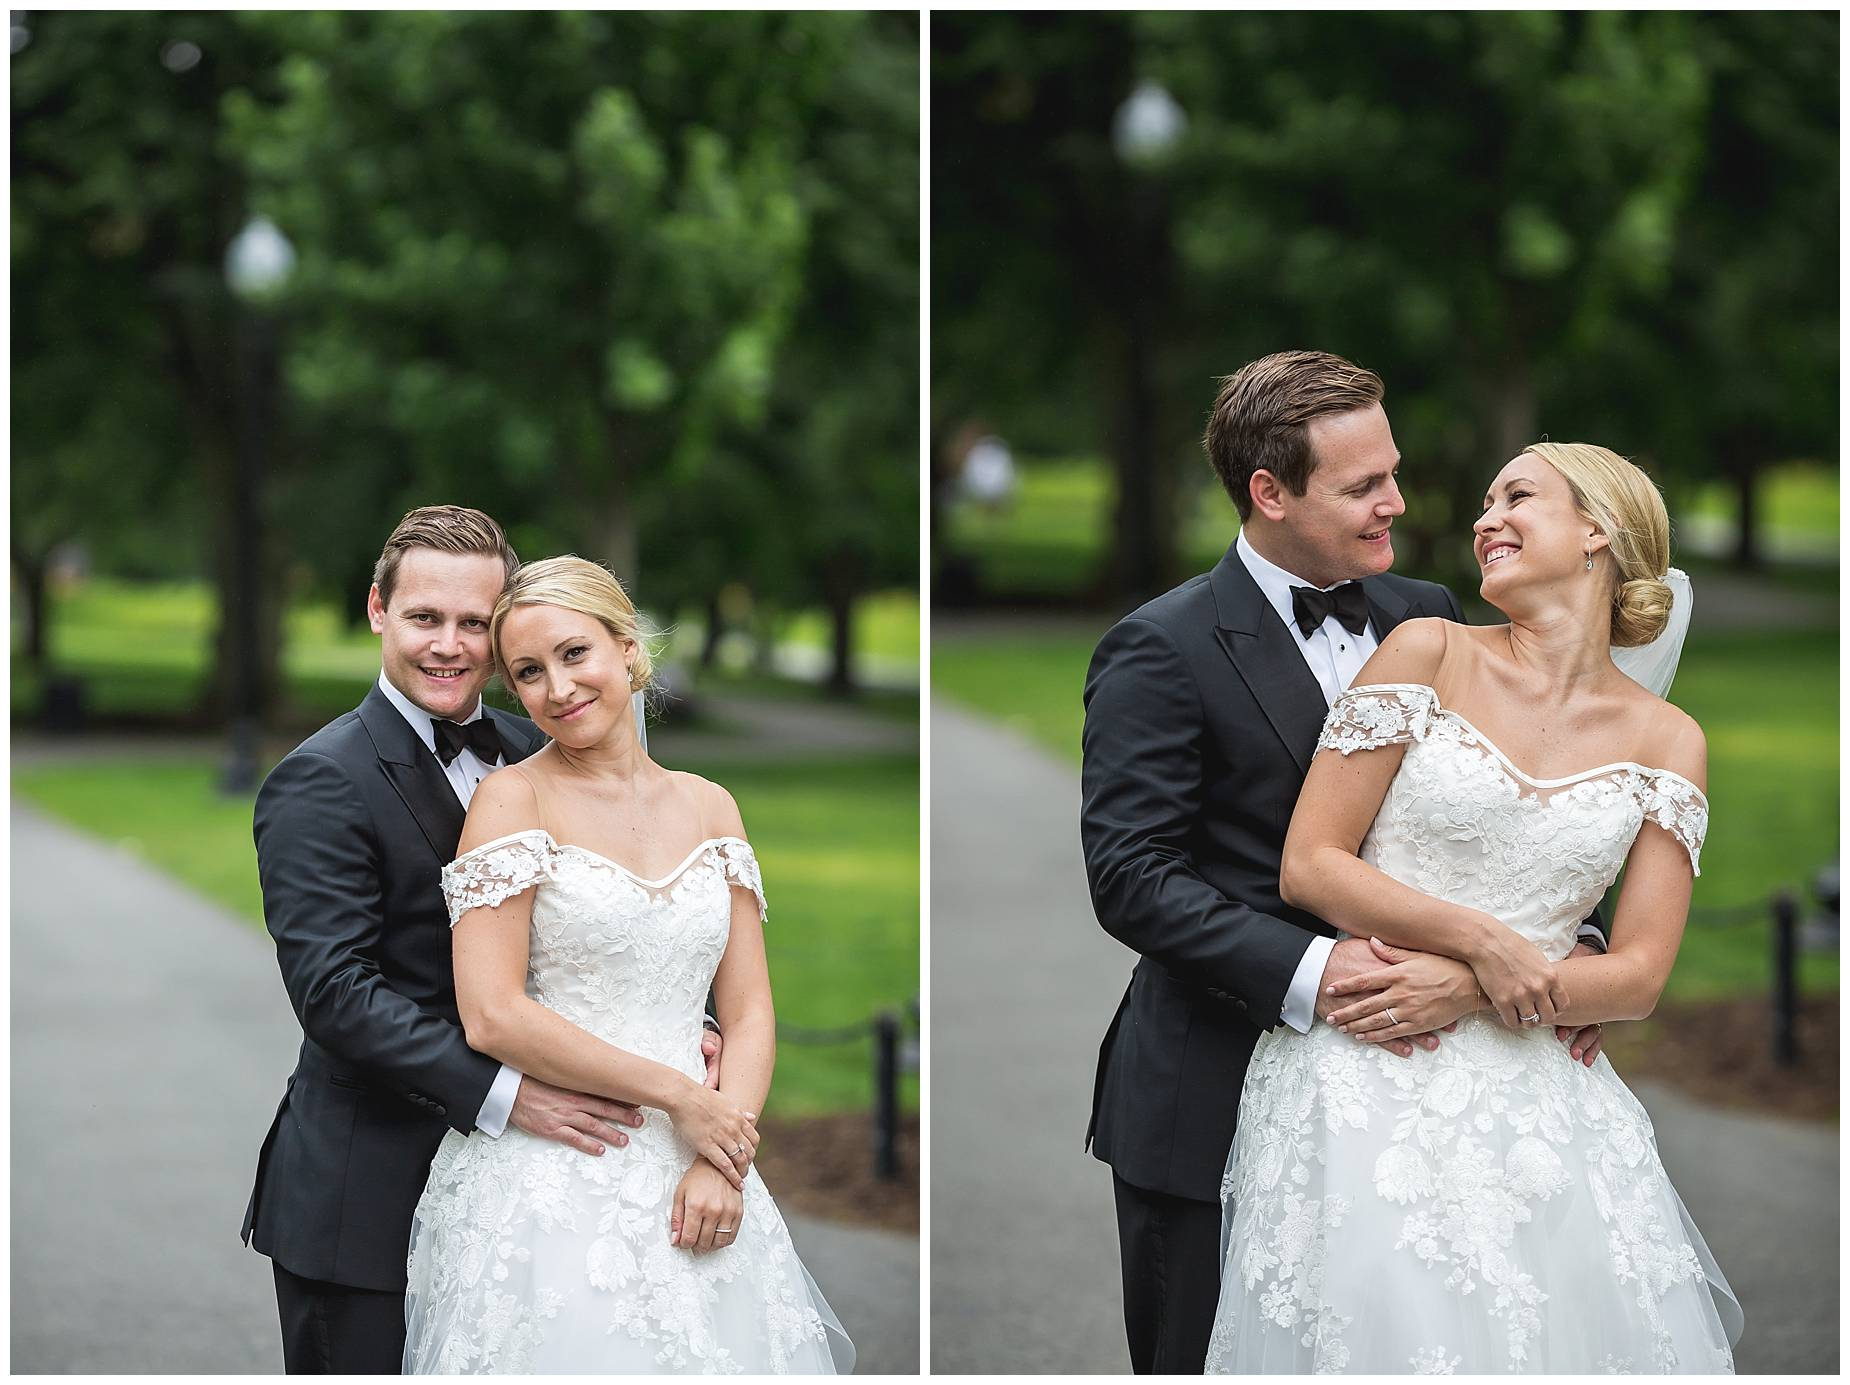 Boston Park Wedding Photographer